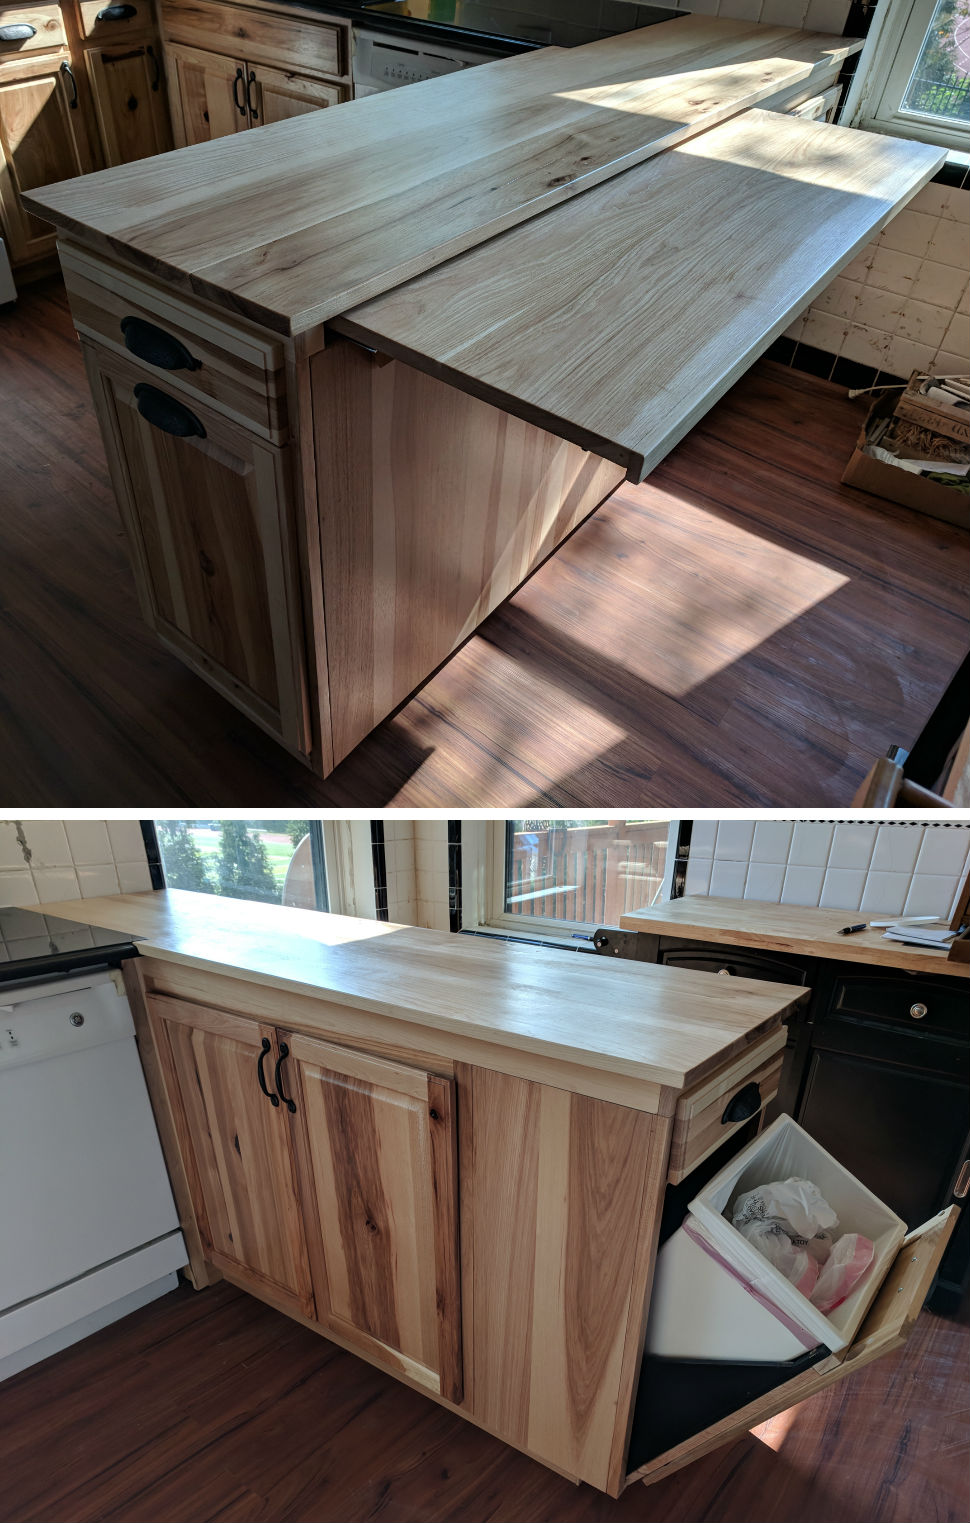 We designed this custom hickory kitchen island with trash pull-out drawer and extra slide out counter space as part of a South City kitchen remodel.